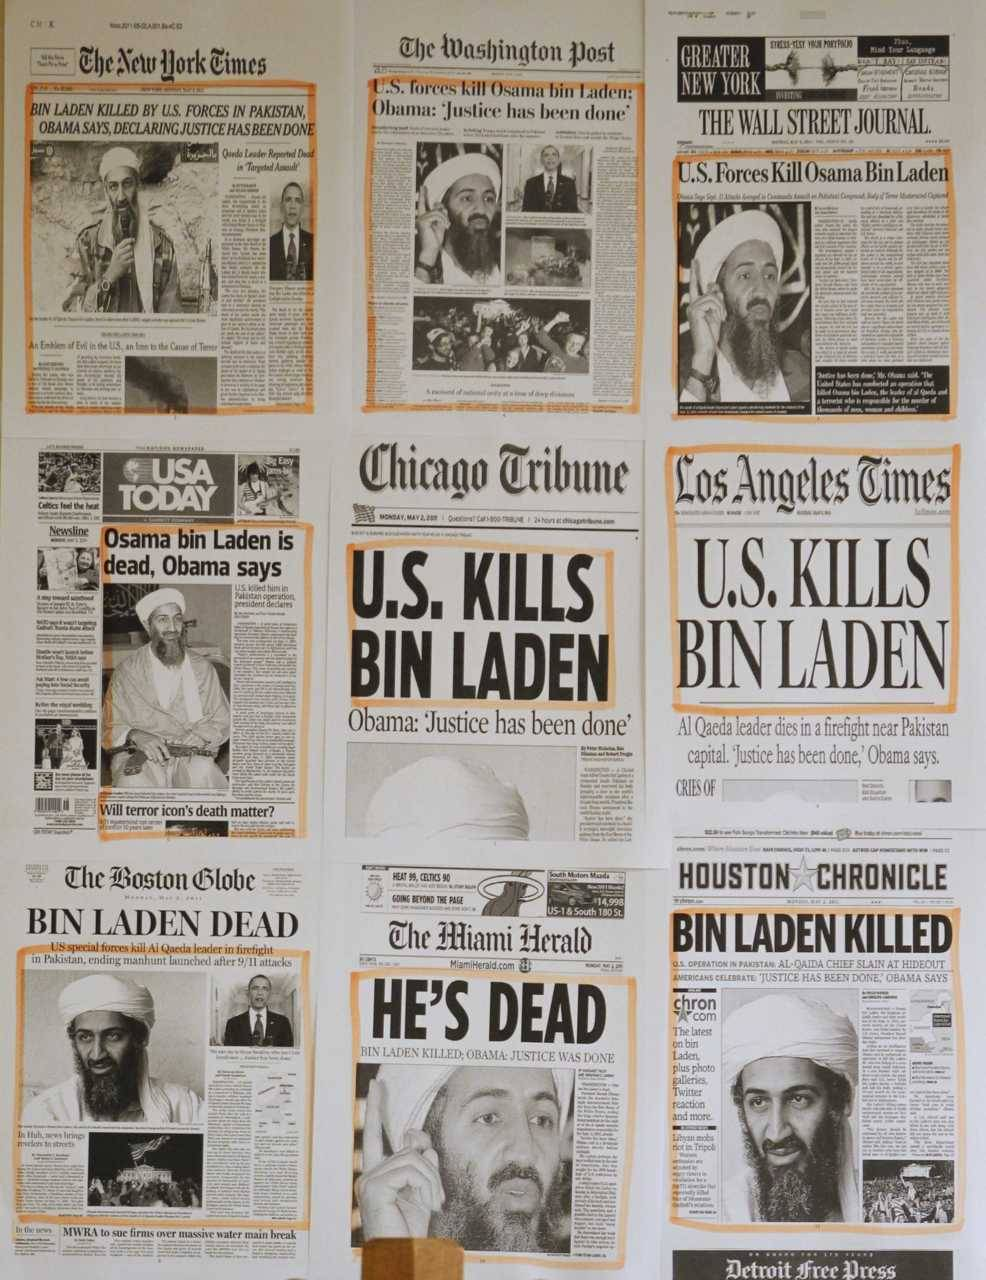 Newspaper headlines and clippings are posted on a wall inside a staff office at the White House in Washington May 2, 2011, the morning after U.S. President Barack Obama announced the death of Osama bin Laden. (Jason Reed/Reuters)Christopher Hitchens: Osama, like Saddam, was tracked to a shrunken domain Charles Lewis: Forgive Bin Laden? No way in hell RCMP assessing threat to Canadians after Bin Laden death Daughter of Canadian 9/11 victim in 'shock' over bin Laden death